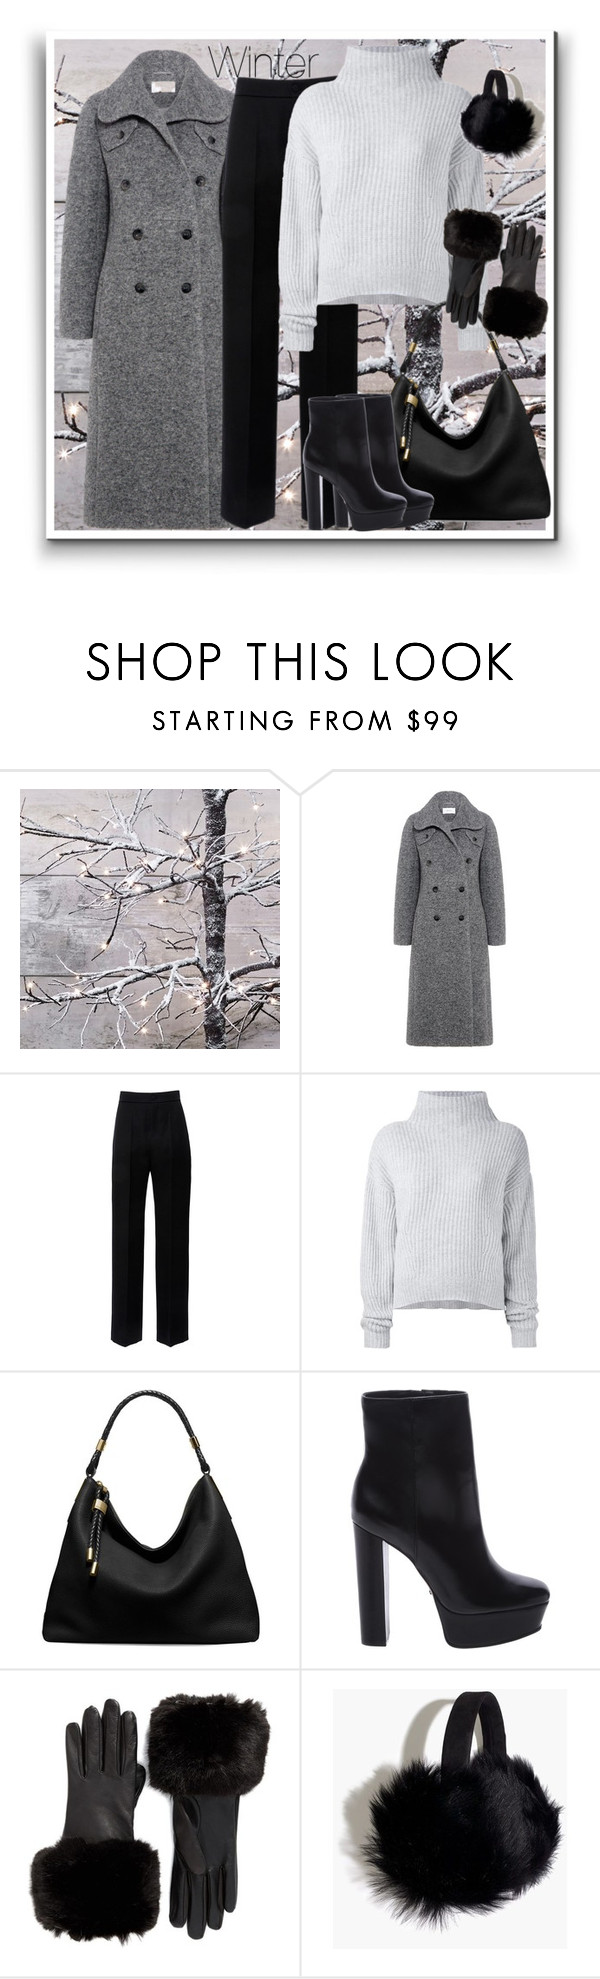 """""""Winter"""" by marionmeyer ❤ liked on Polyvore featuring Carven, Lanvin, Le Kasha, Michael Kors, Schutz, Ted Baker, Madewell and Winter"""